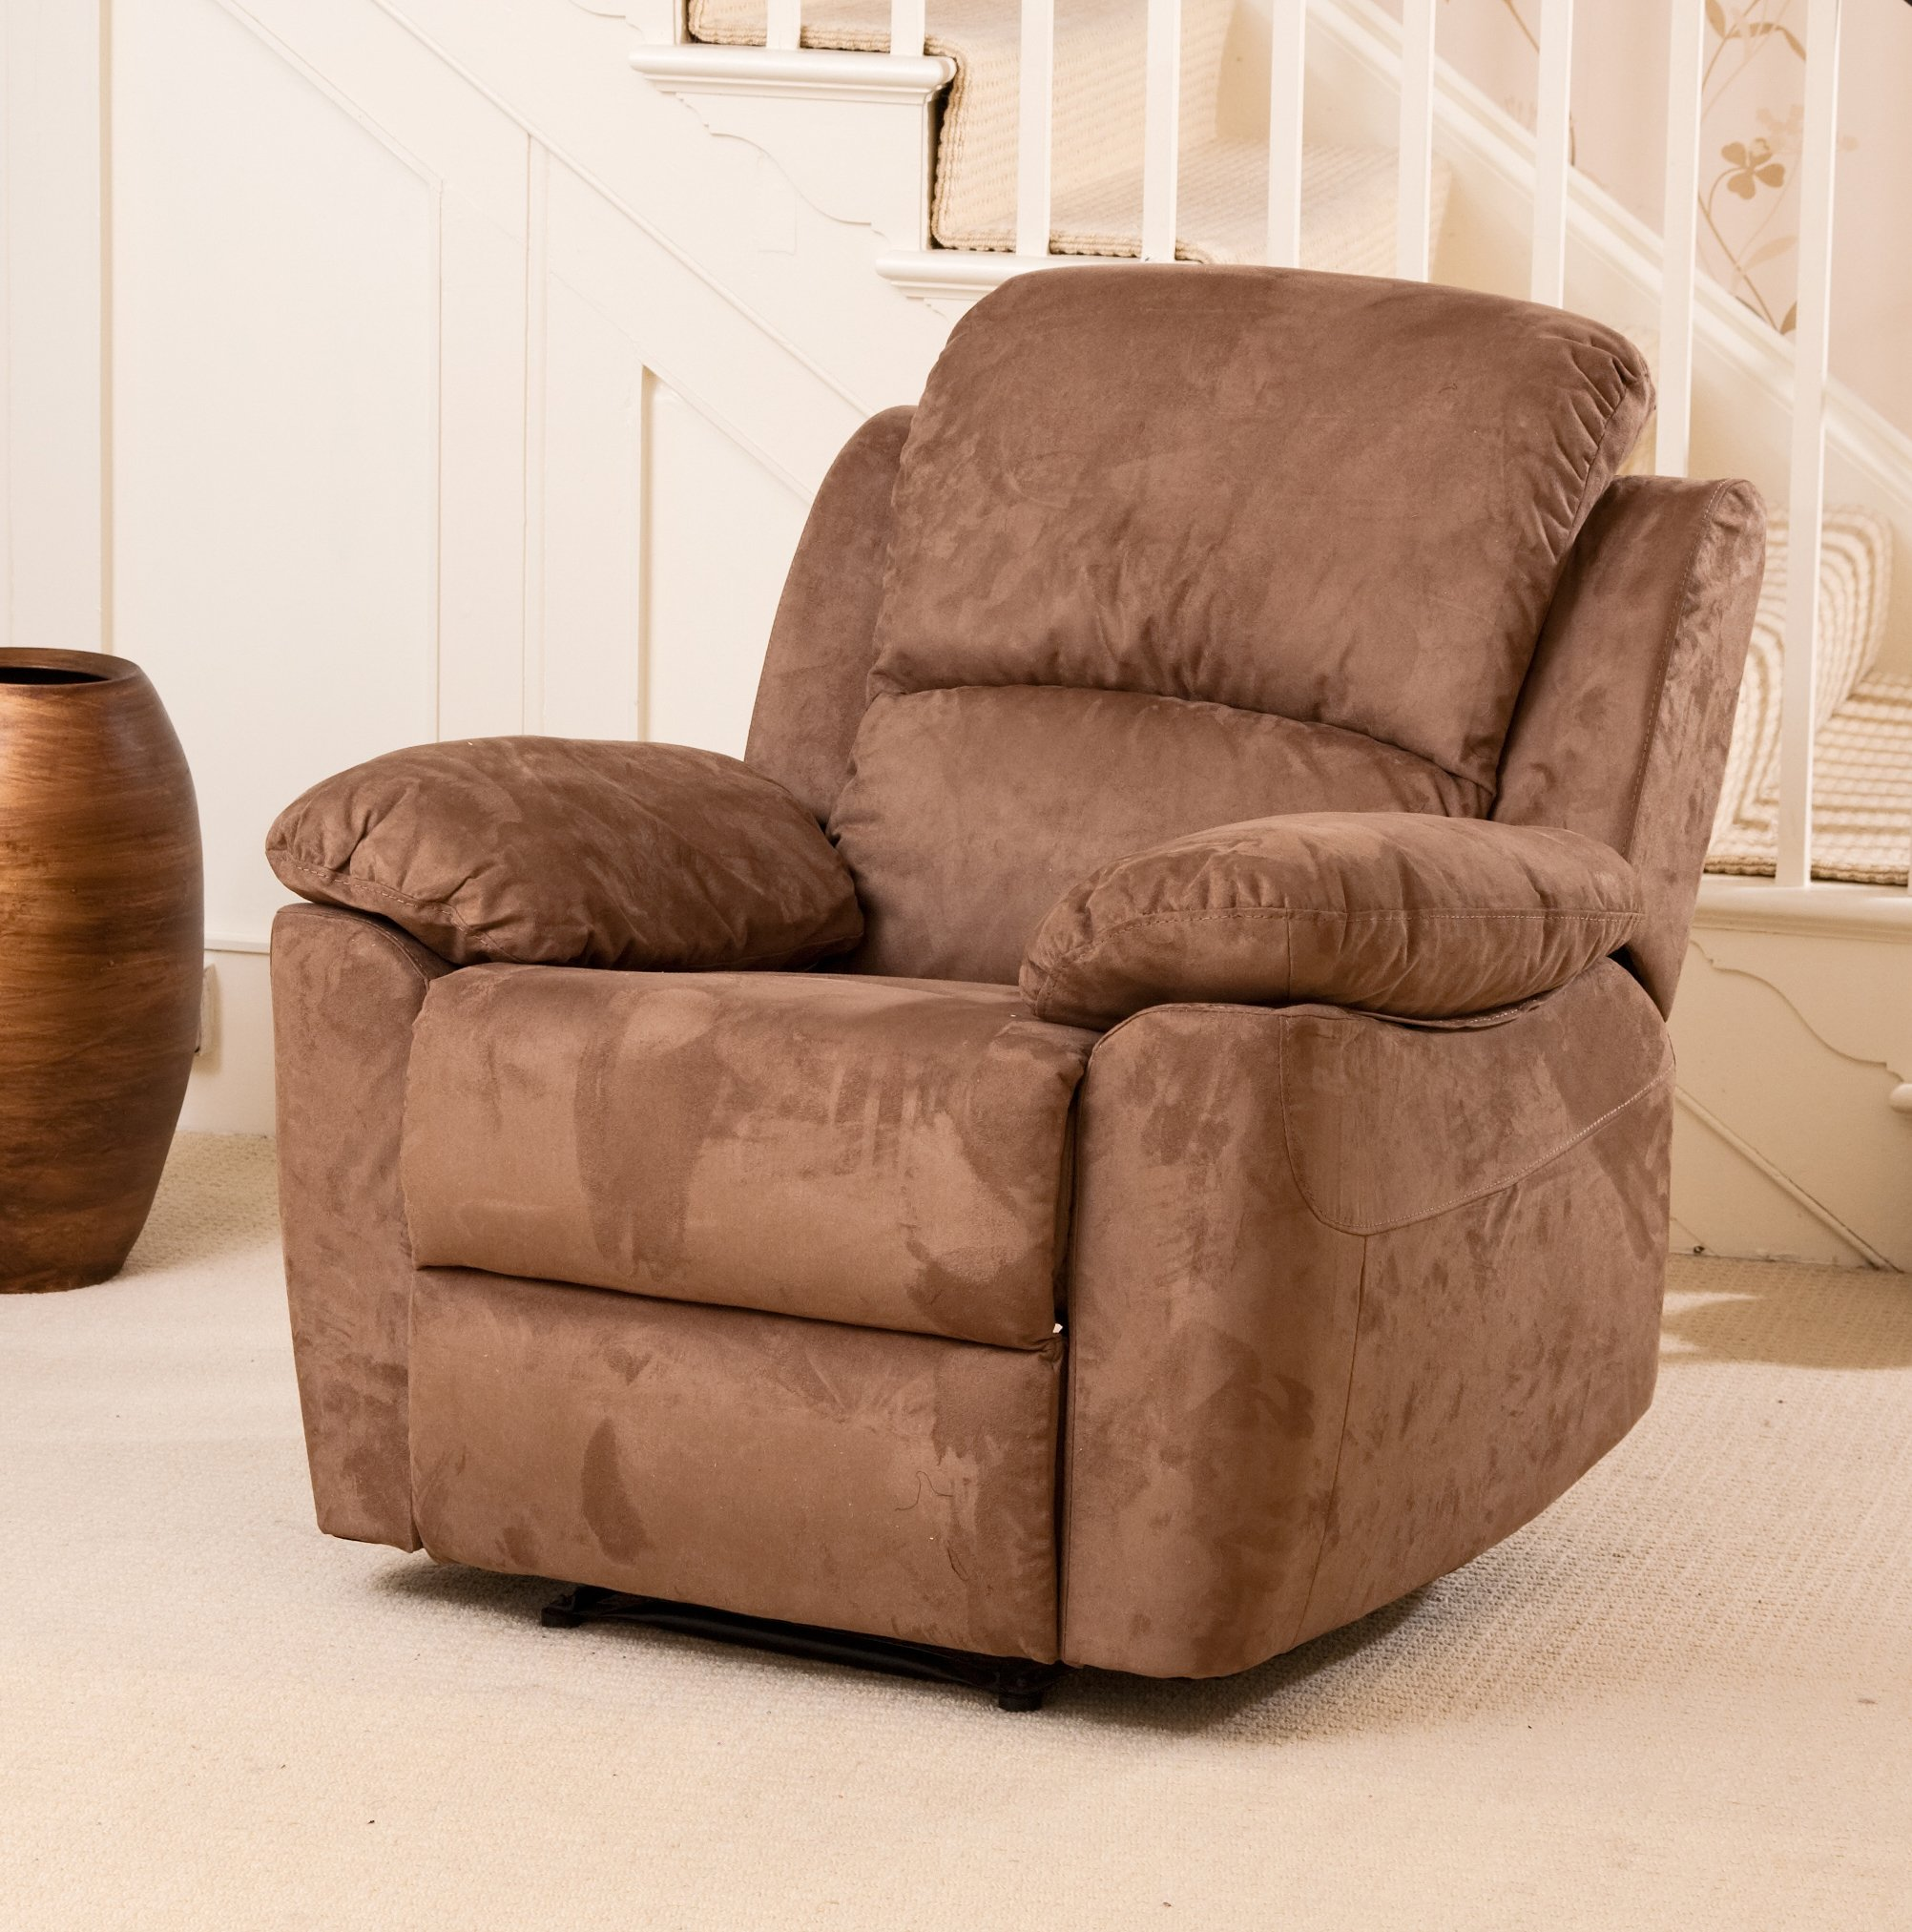 sofa collection como luxury electric recliner armchair sofa fabric light brown 90 x comfortable recliner couches8 comfortable